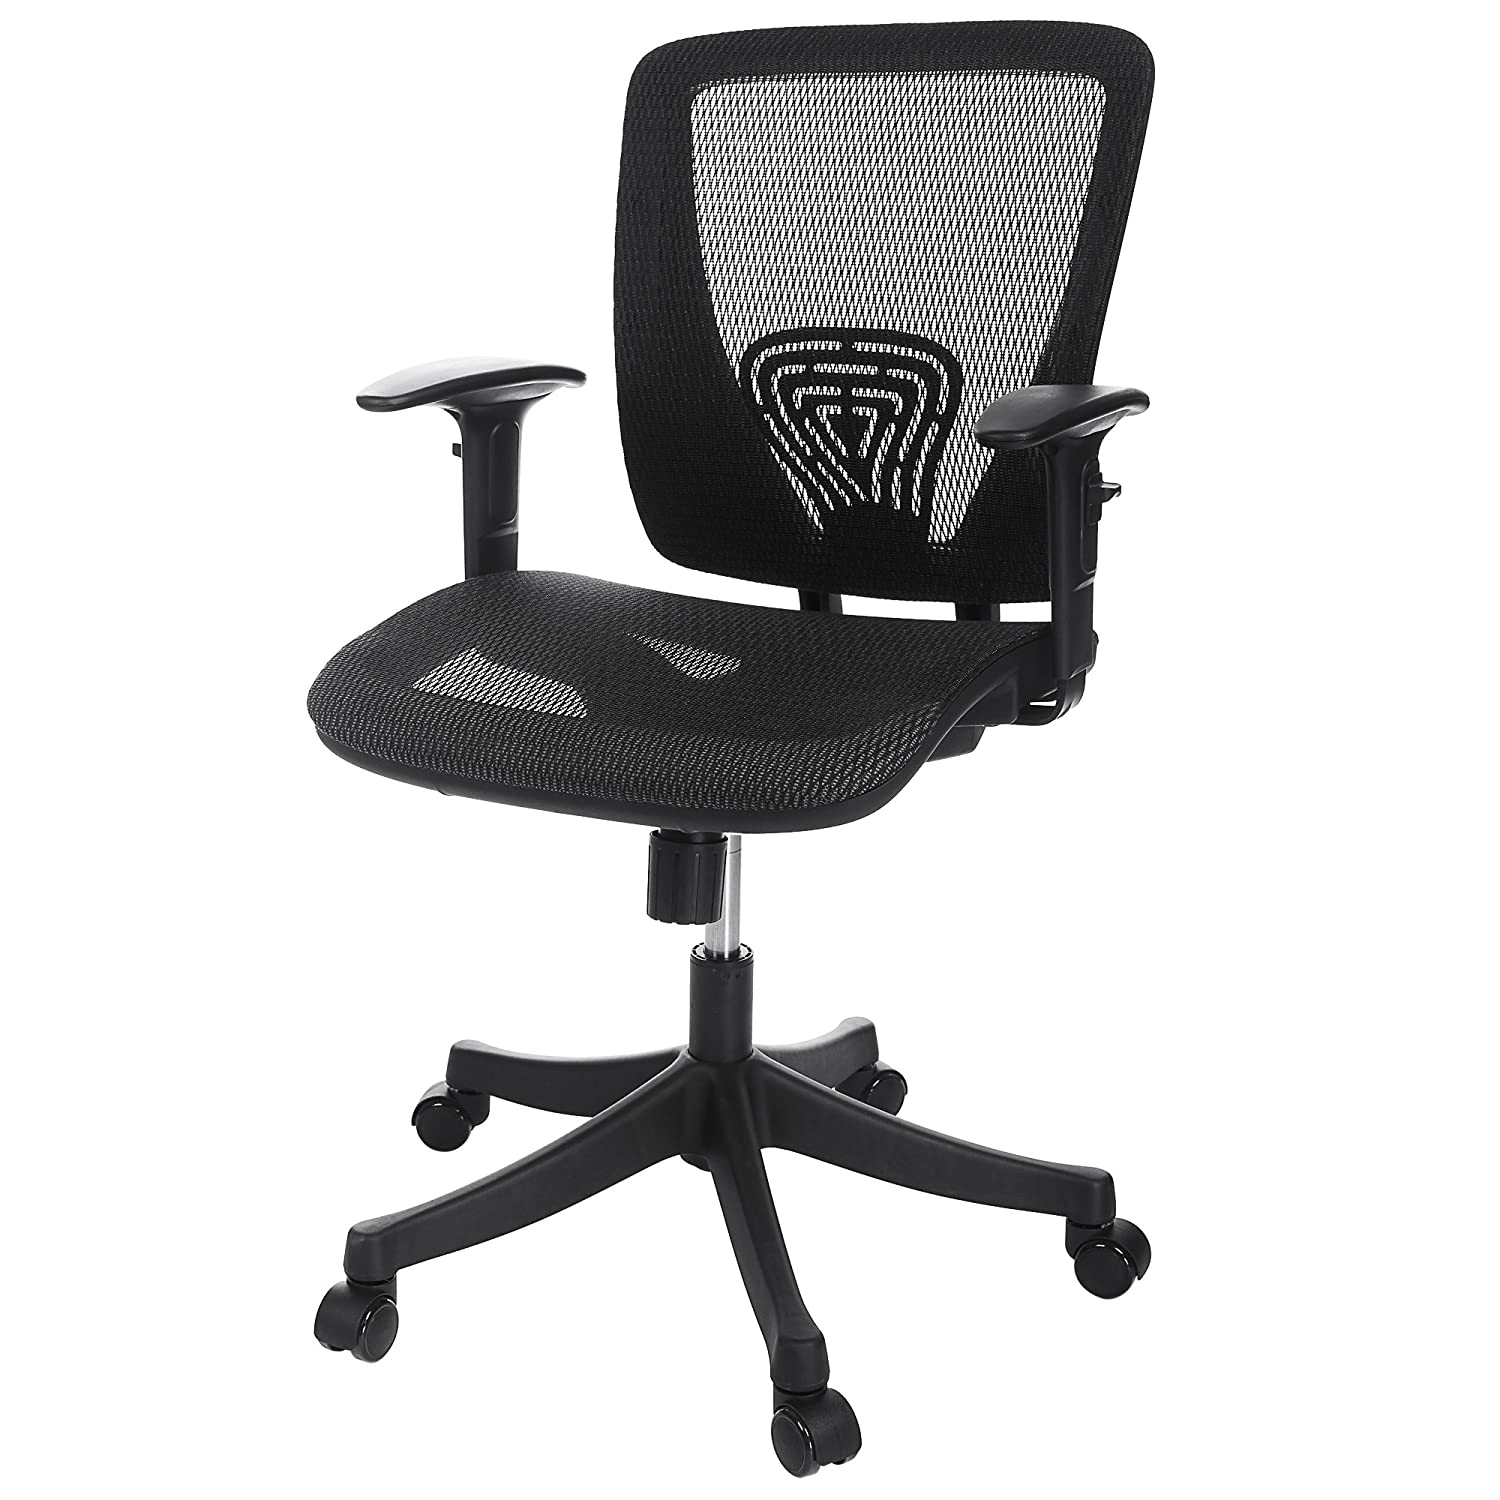 Top 30 Best Office Chairs Ergonomic Buying Guide 2016-2017